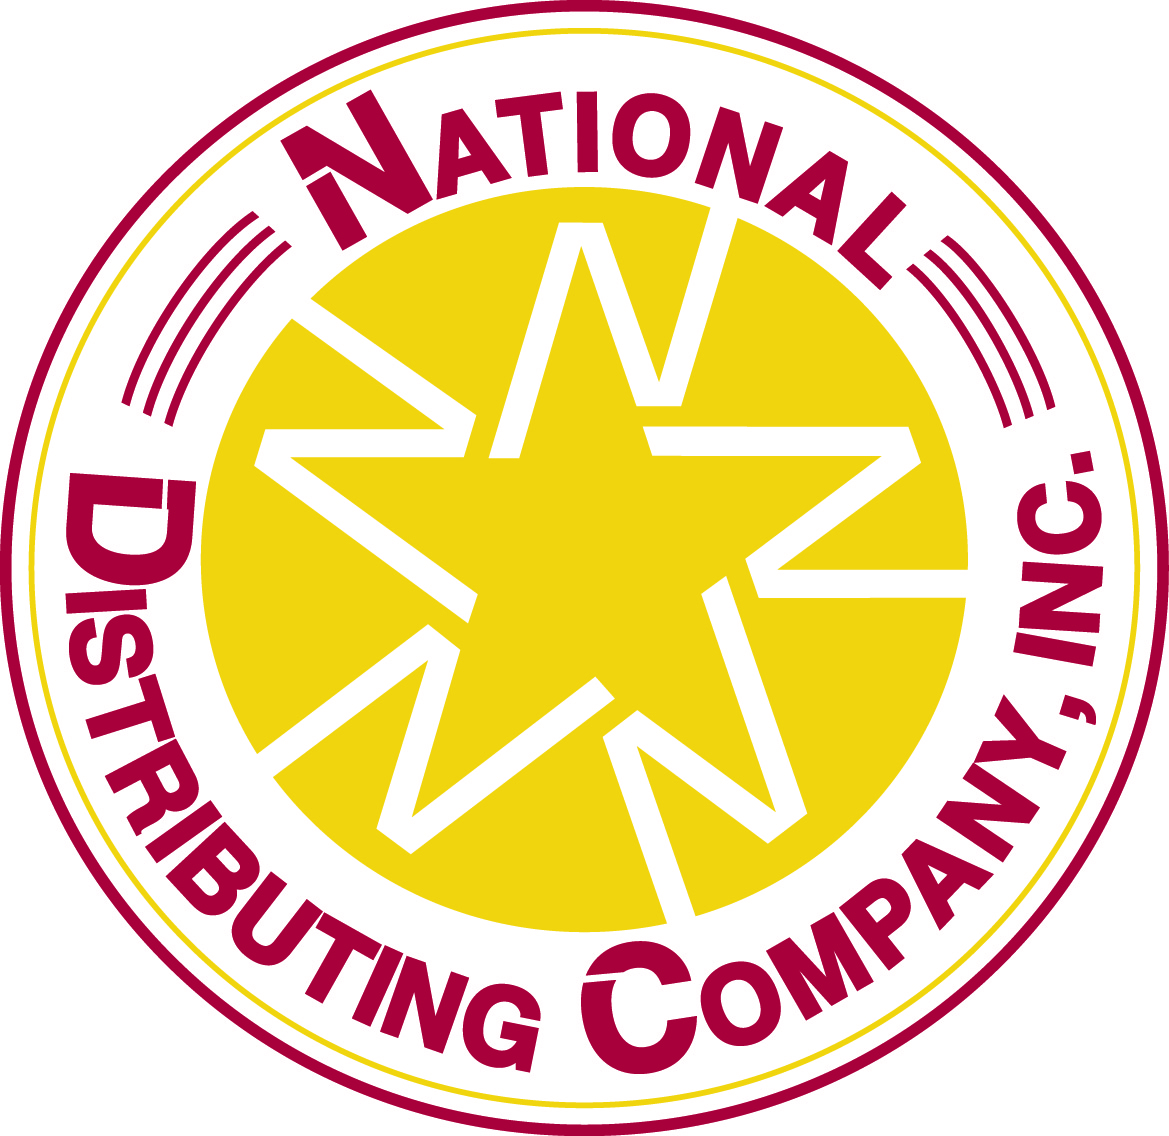 National Distributing Company.jpg